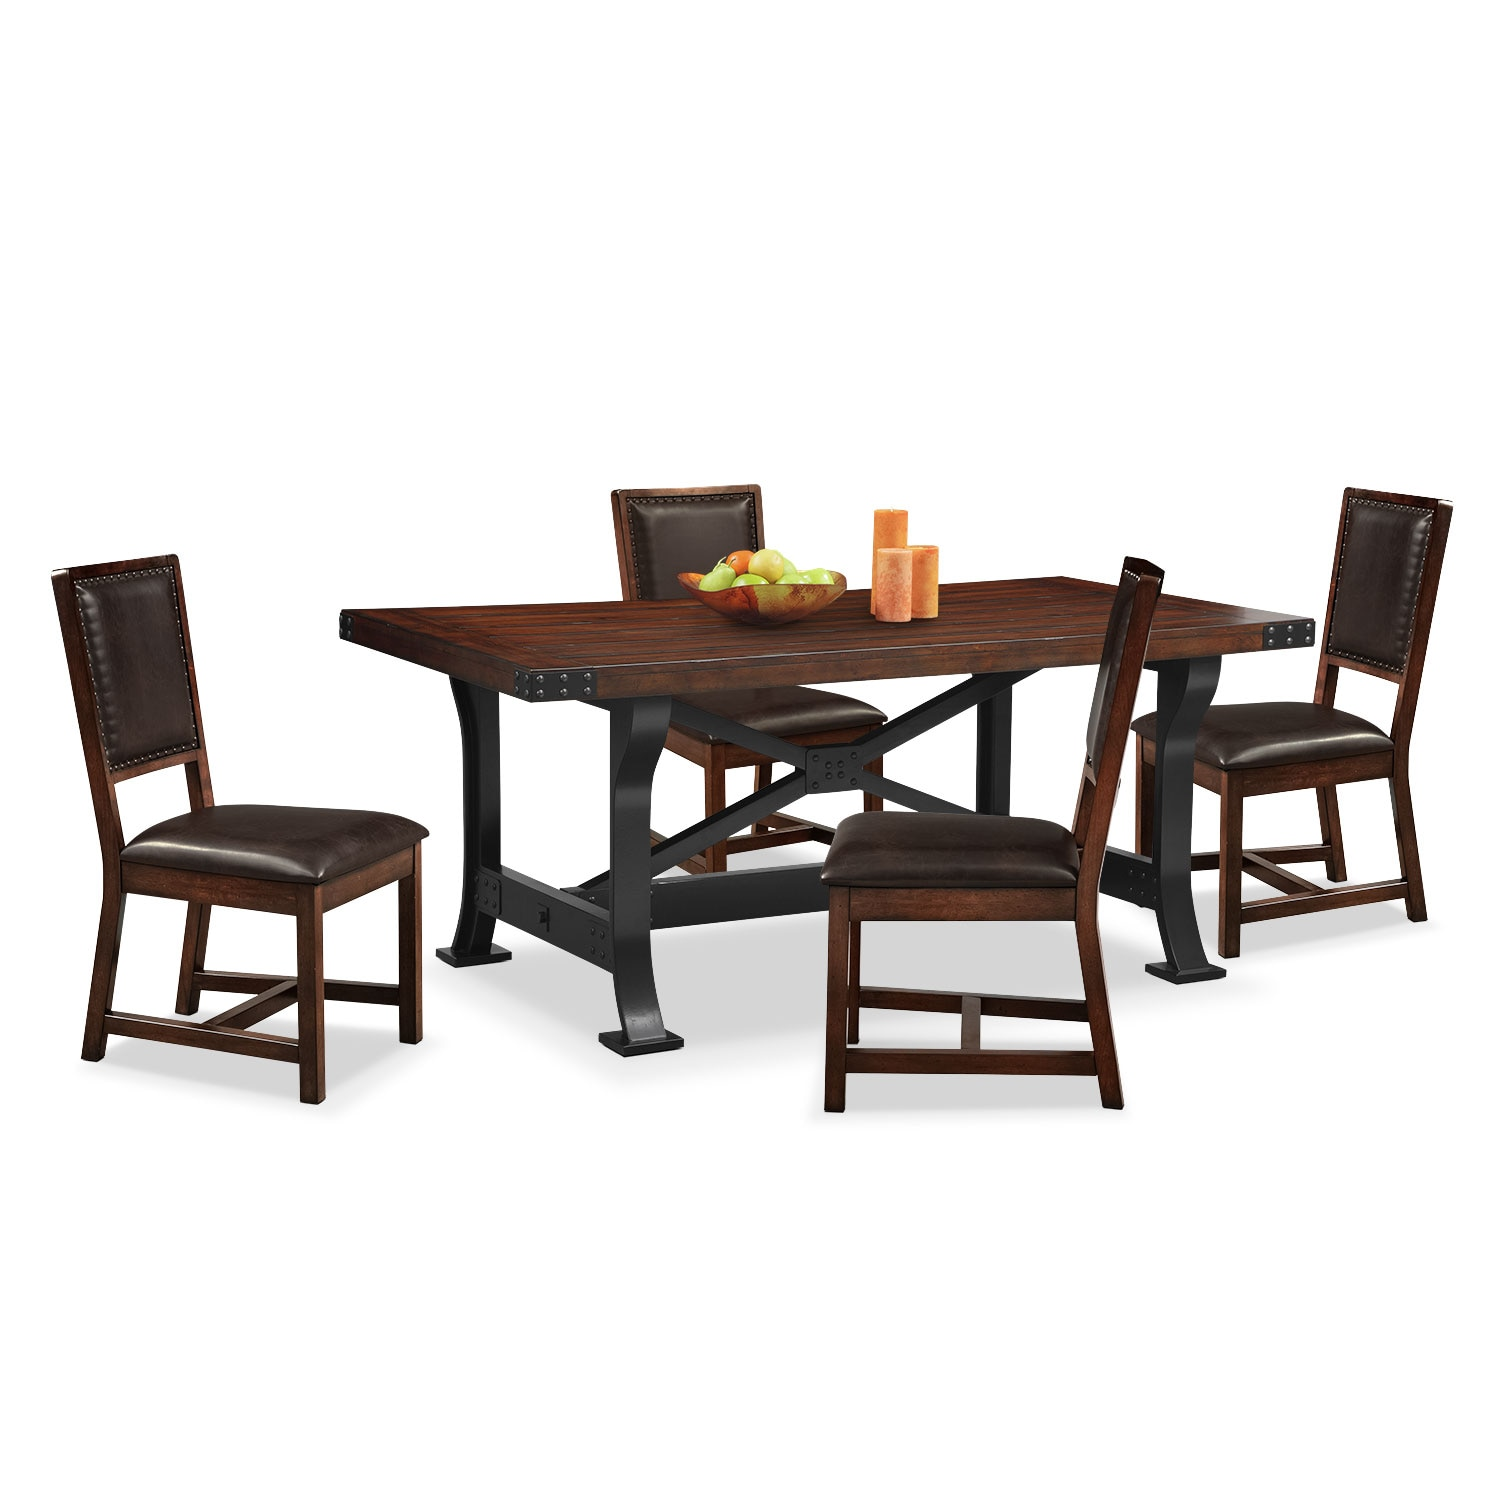 Merveilleux Dining Room Furniture   Newcastle Dining Table And 4 Side Chairs   Mahogany